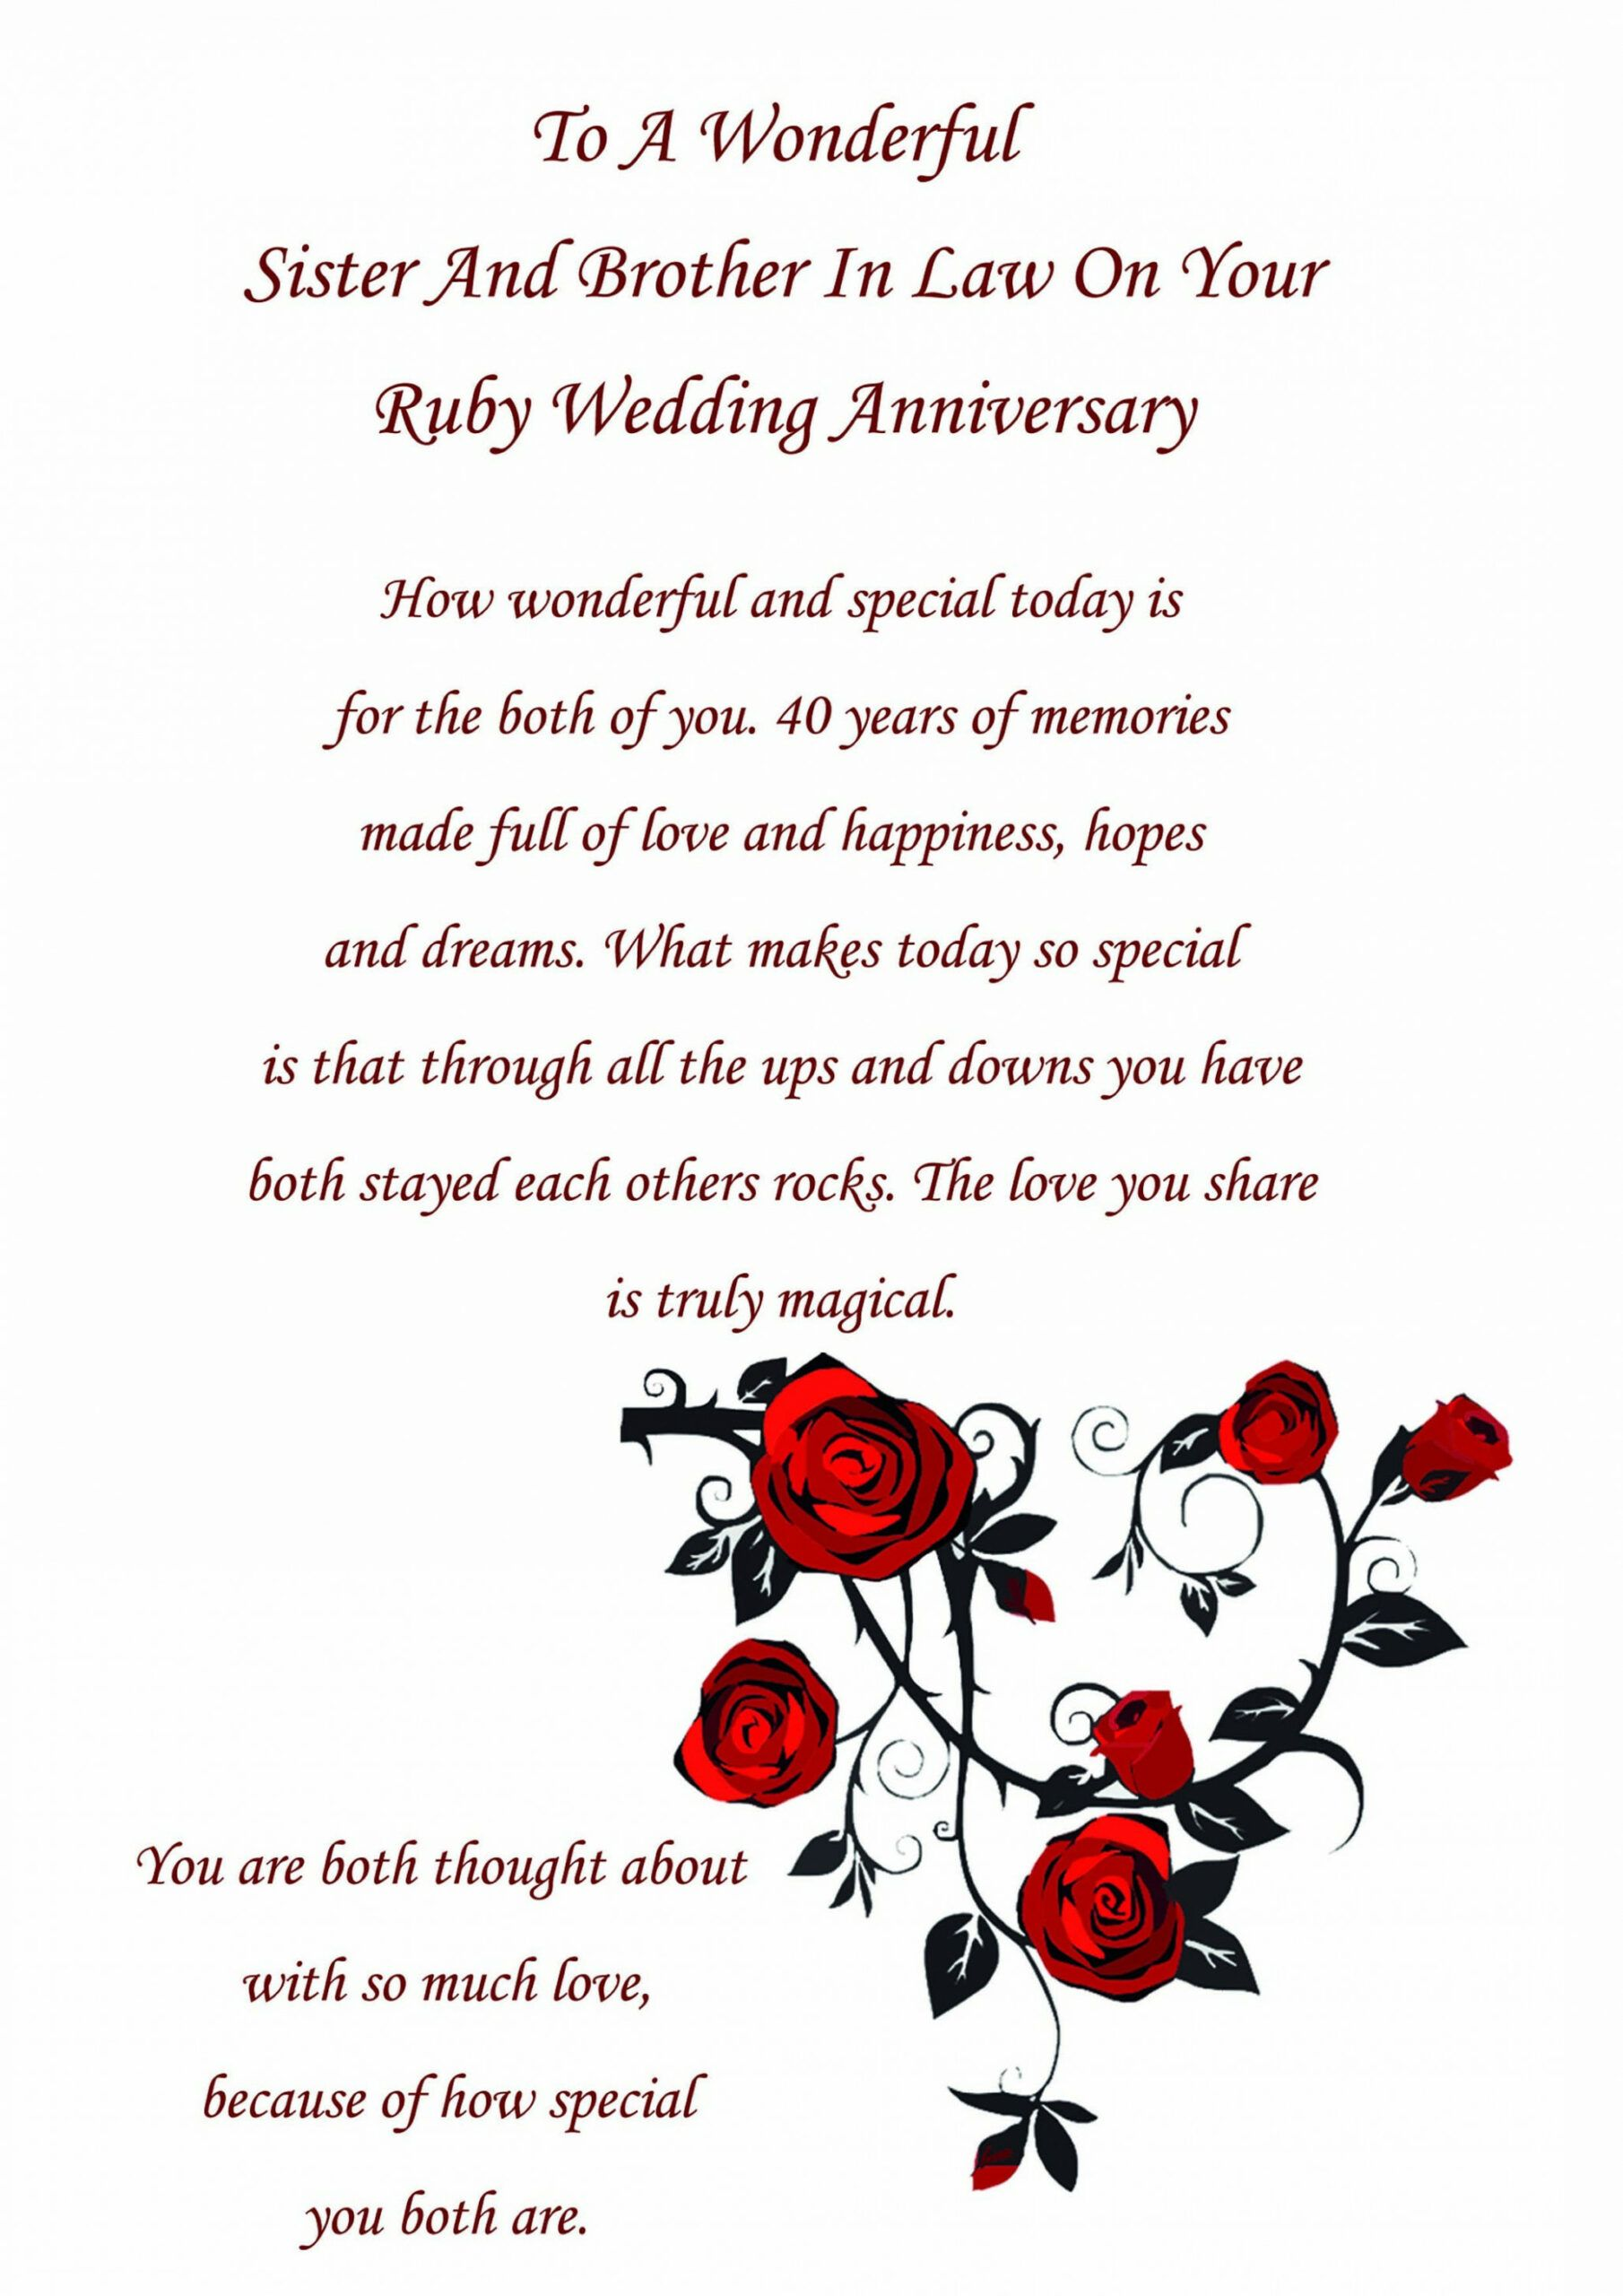 By The Time Of Our Aboriginal Bells Anniversary Anniversary Verses Anniversary Cards Verses For Cards